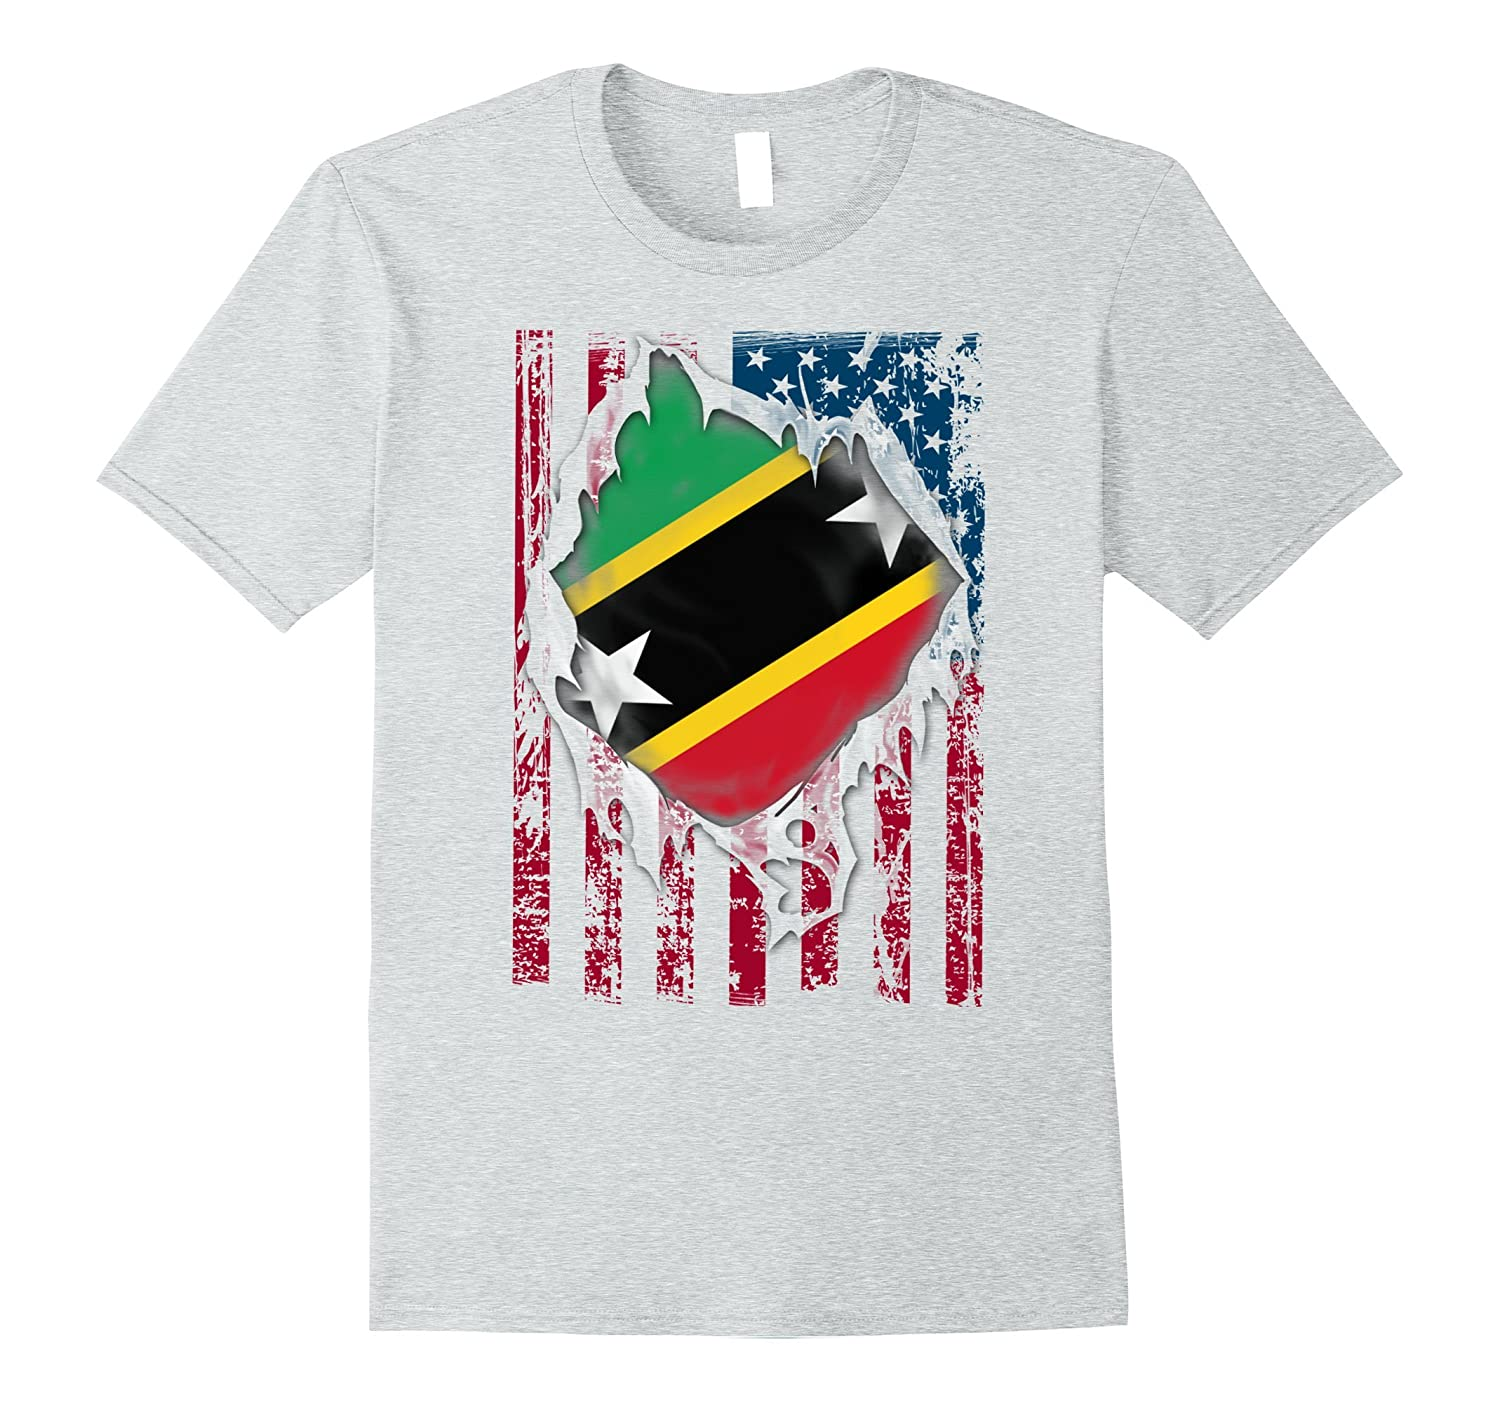 d4ee5ebf Saint Kitts and Nevis distressed flag proud T-Shirts-CL – Colamaga